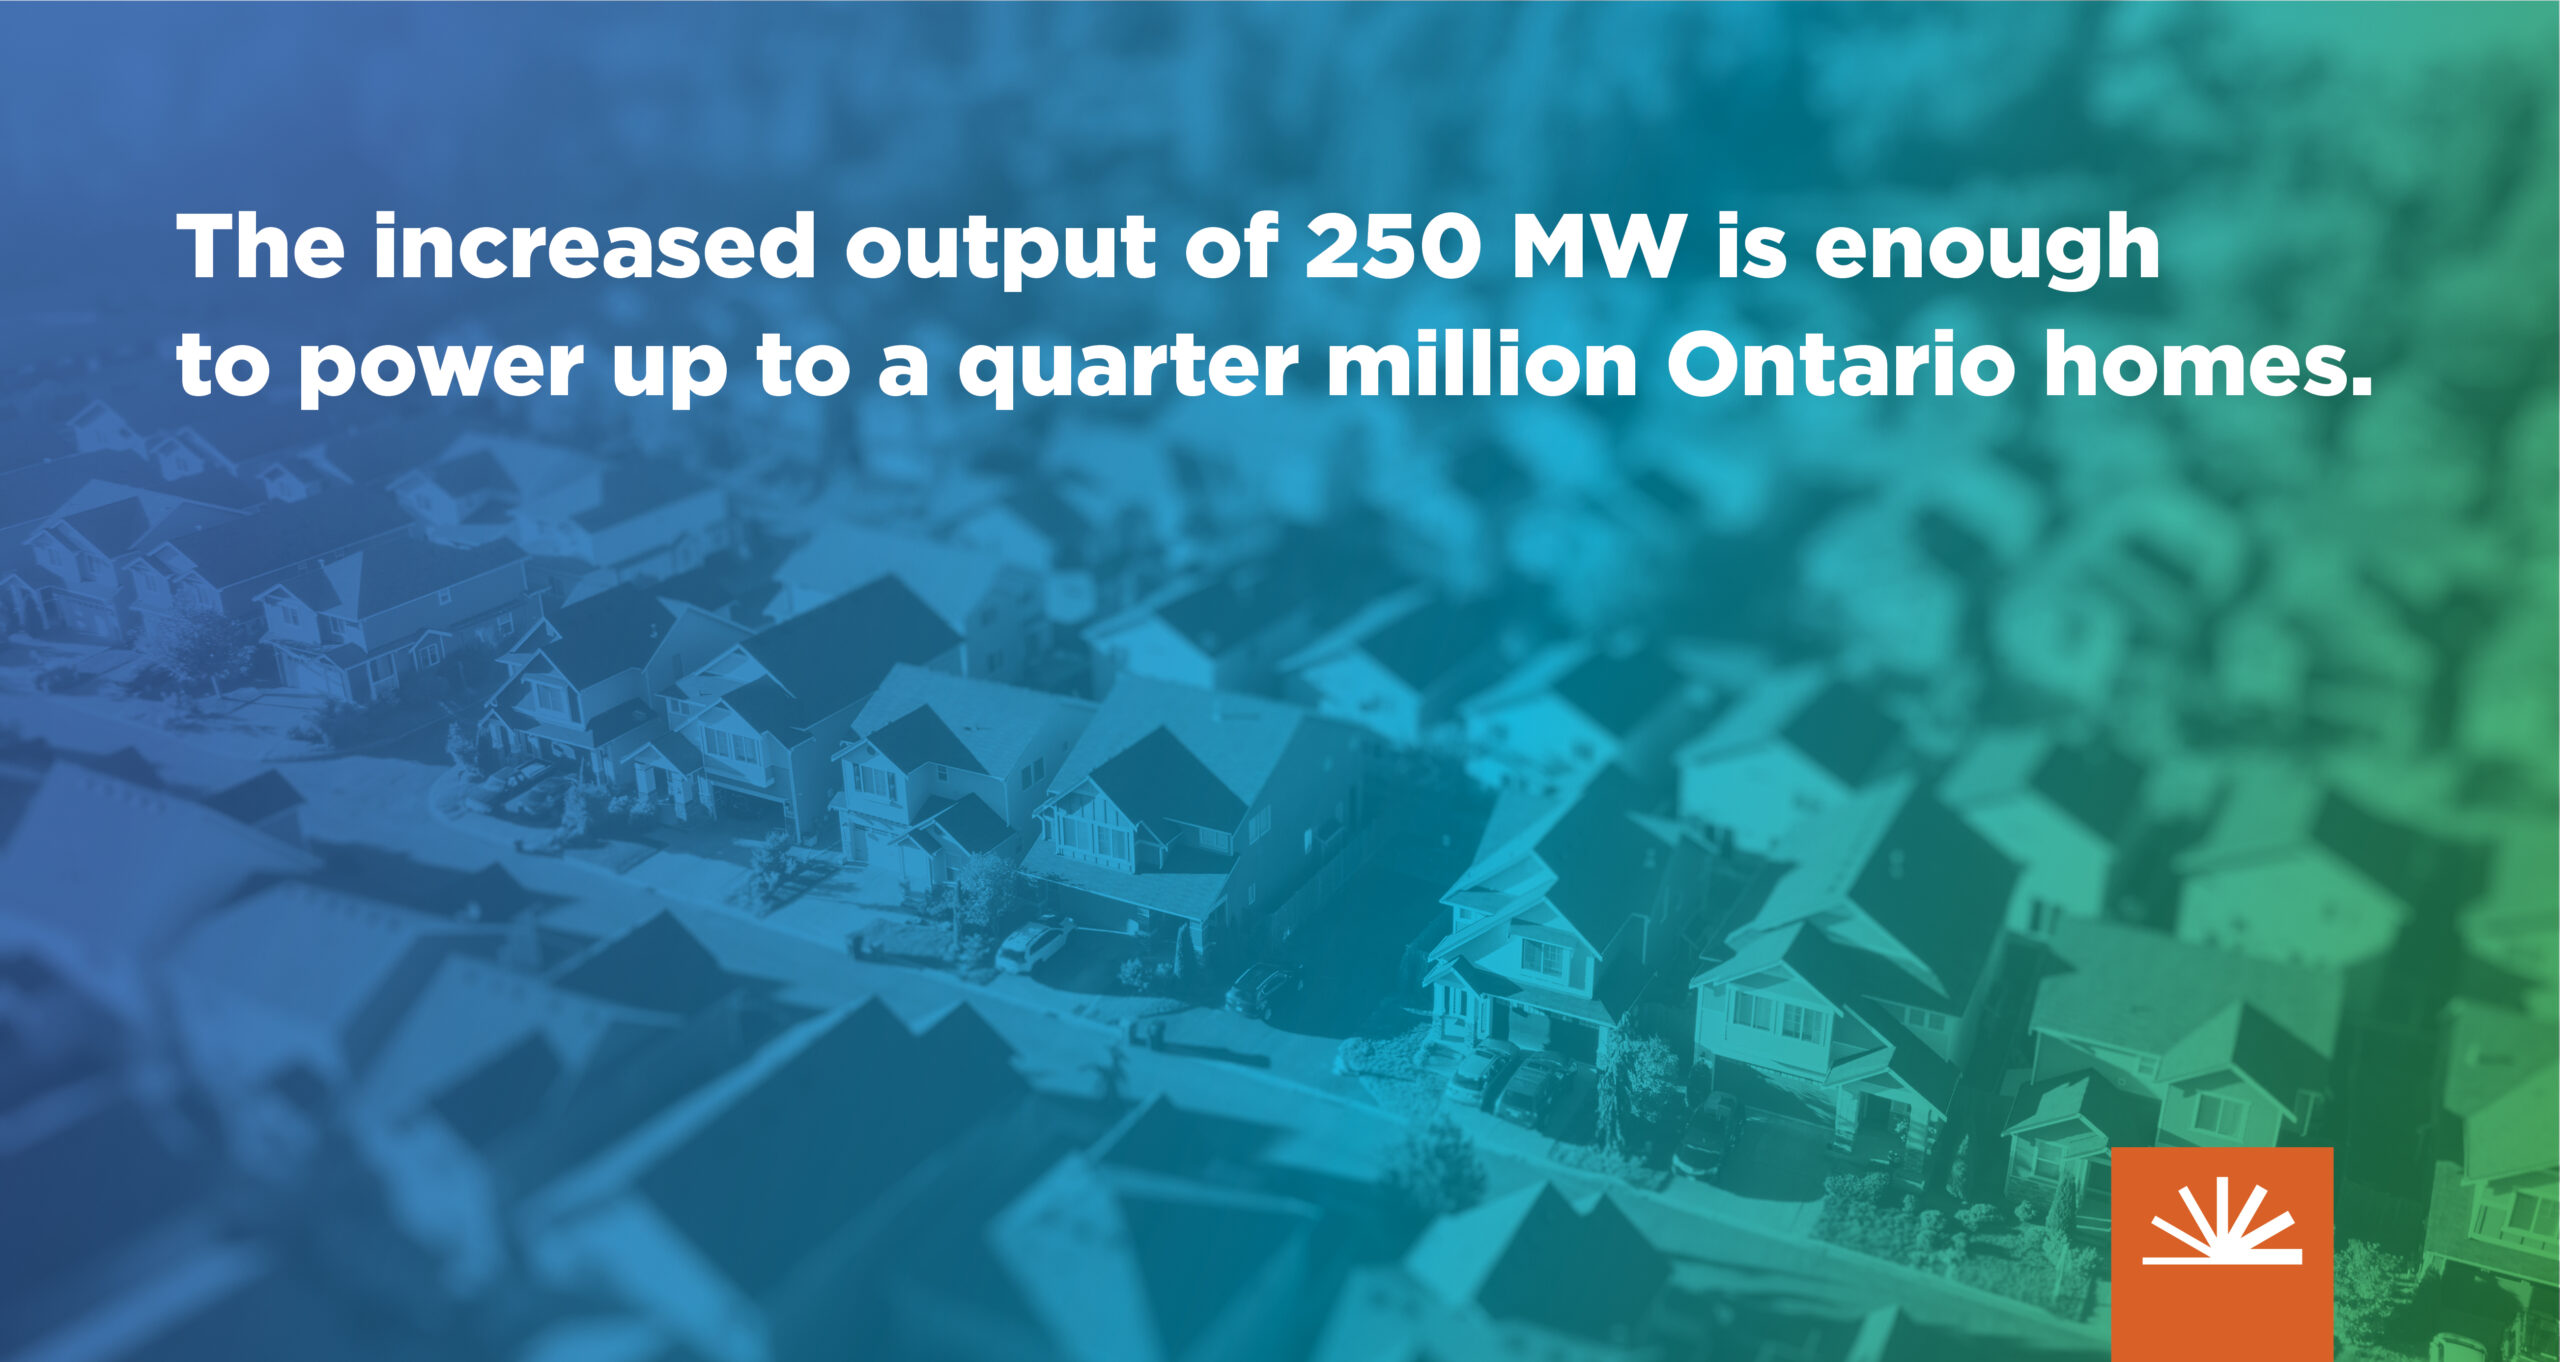 'The increased output of 250 MW is enough to power up to a quarter million Ontario homes